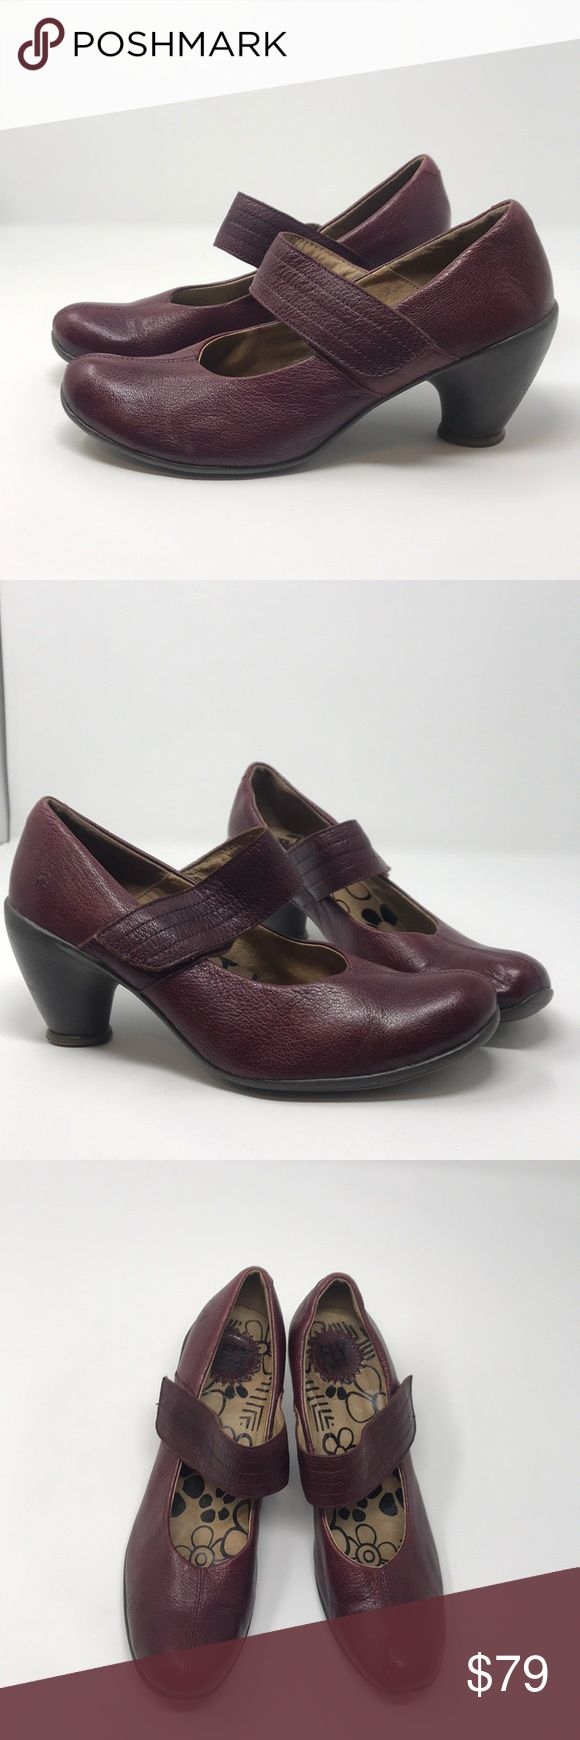 "Fly London Shoes Mary Jane style Fly London burgundy soft leather shoes, Mary Jane style. Rubber heels 3"". Little signs of worn only on heels but still have so much life. Size 39 Fly London Shoes Heels"